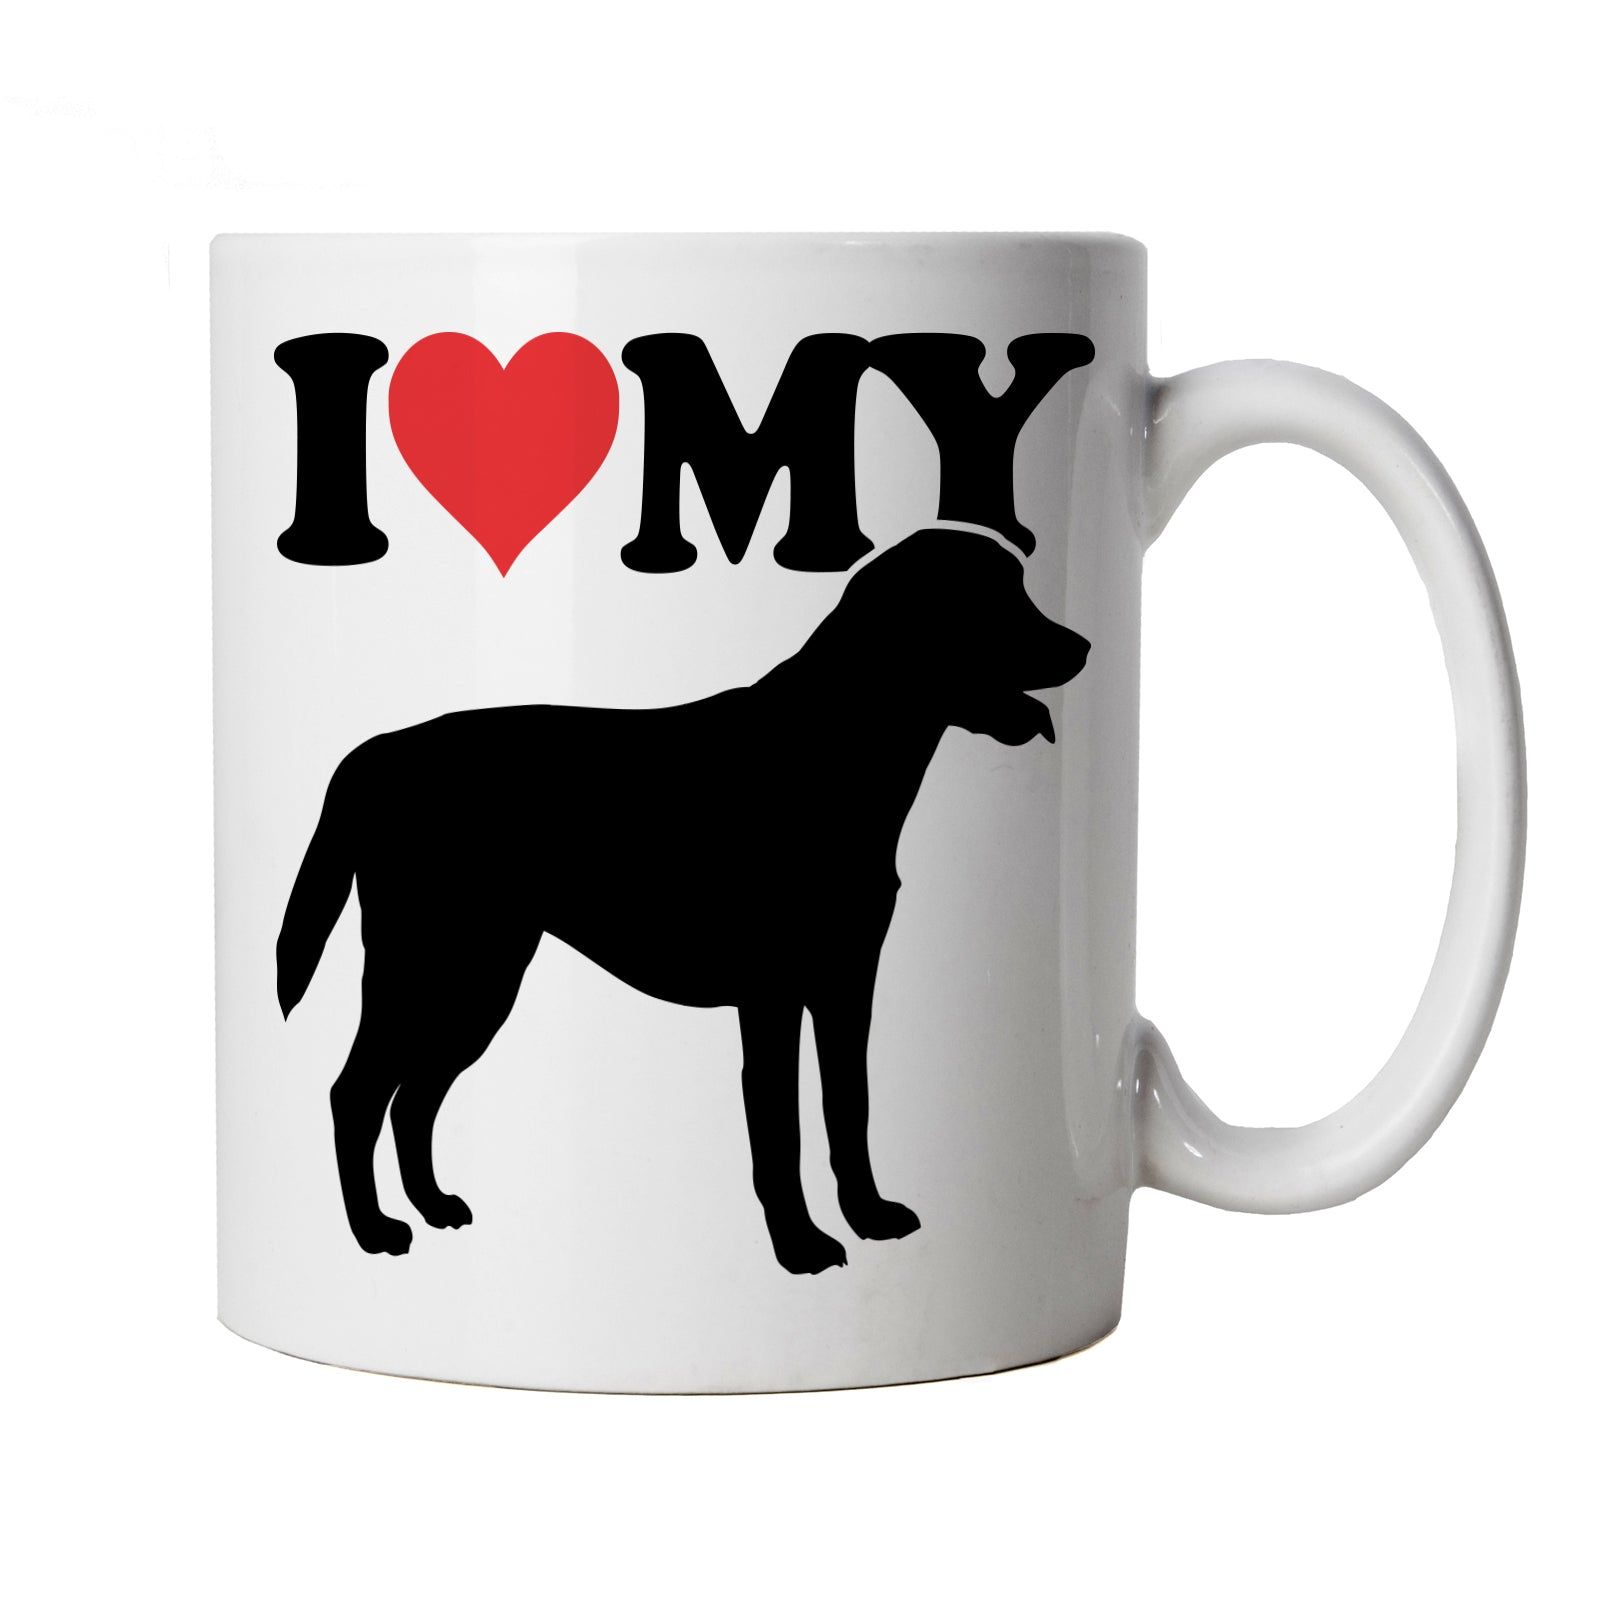 I Love My Labrador Mug | Dog Gift Fur Baby Lover Owner Mans Best Friend | Crufts Dog Show Kennel Club Pedigree Breed Puppy | Dogs Cup Gift